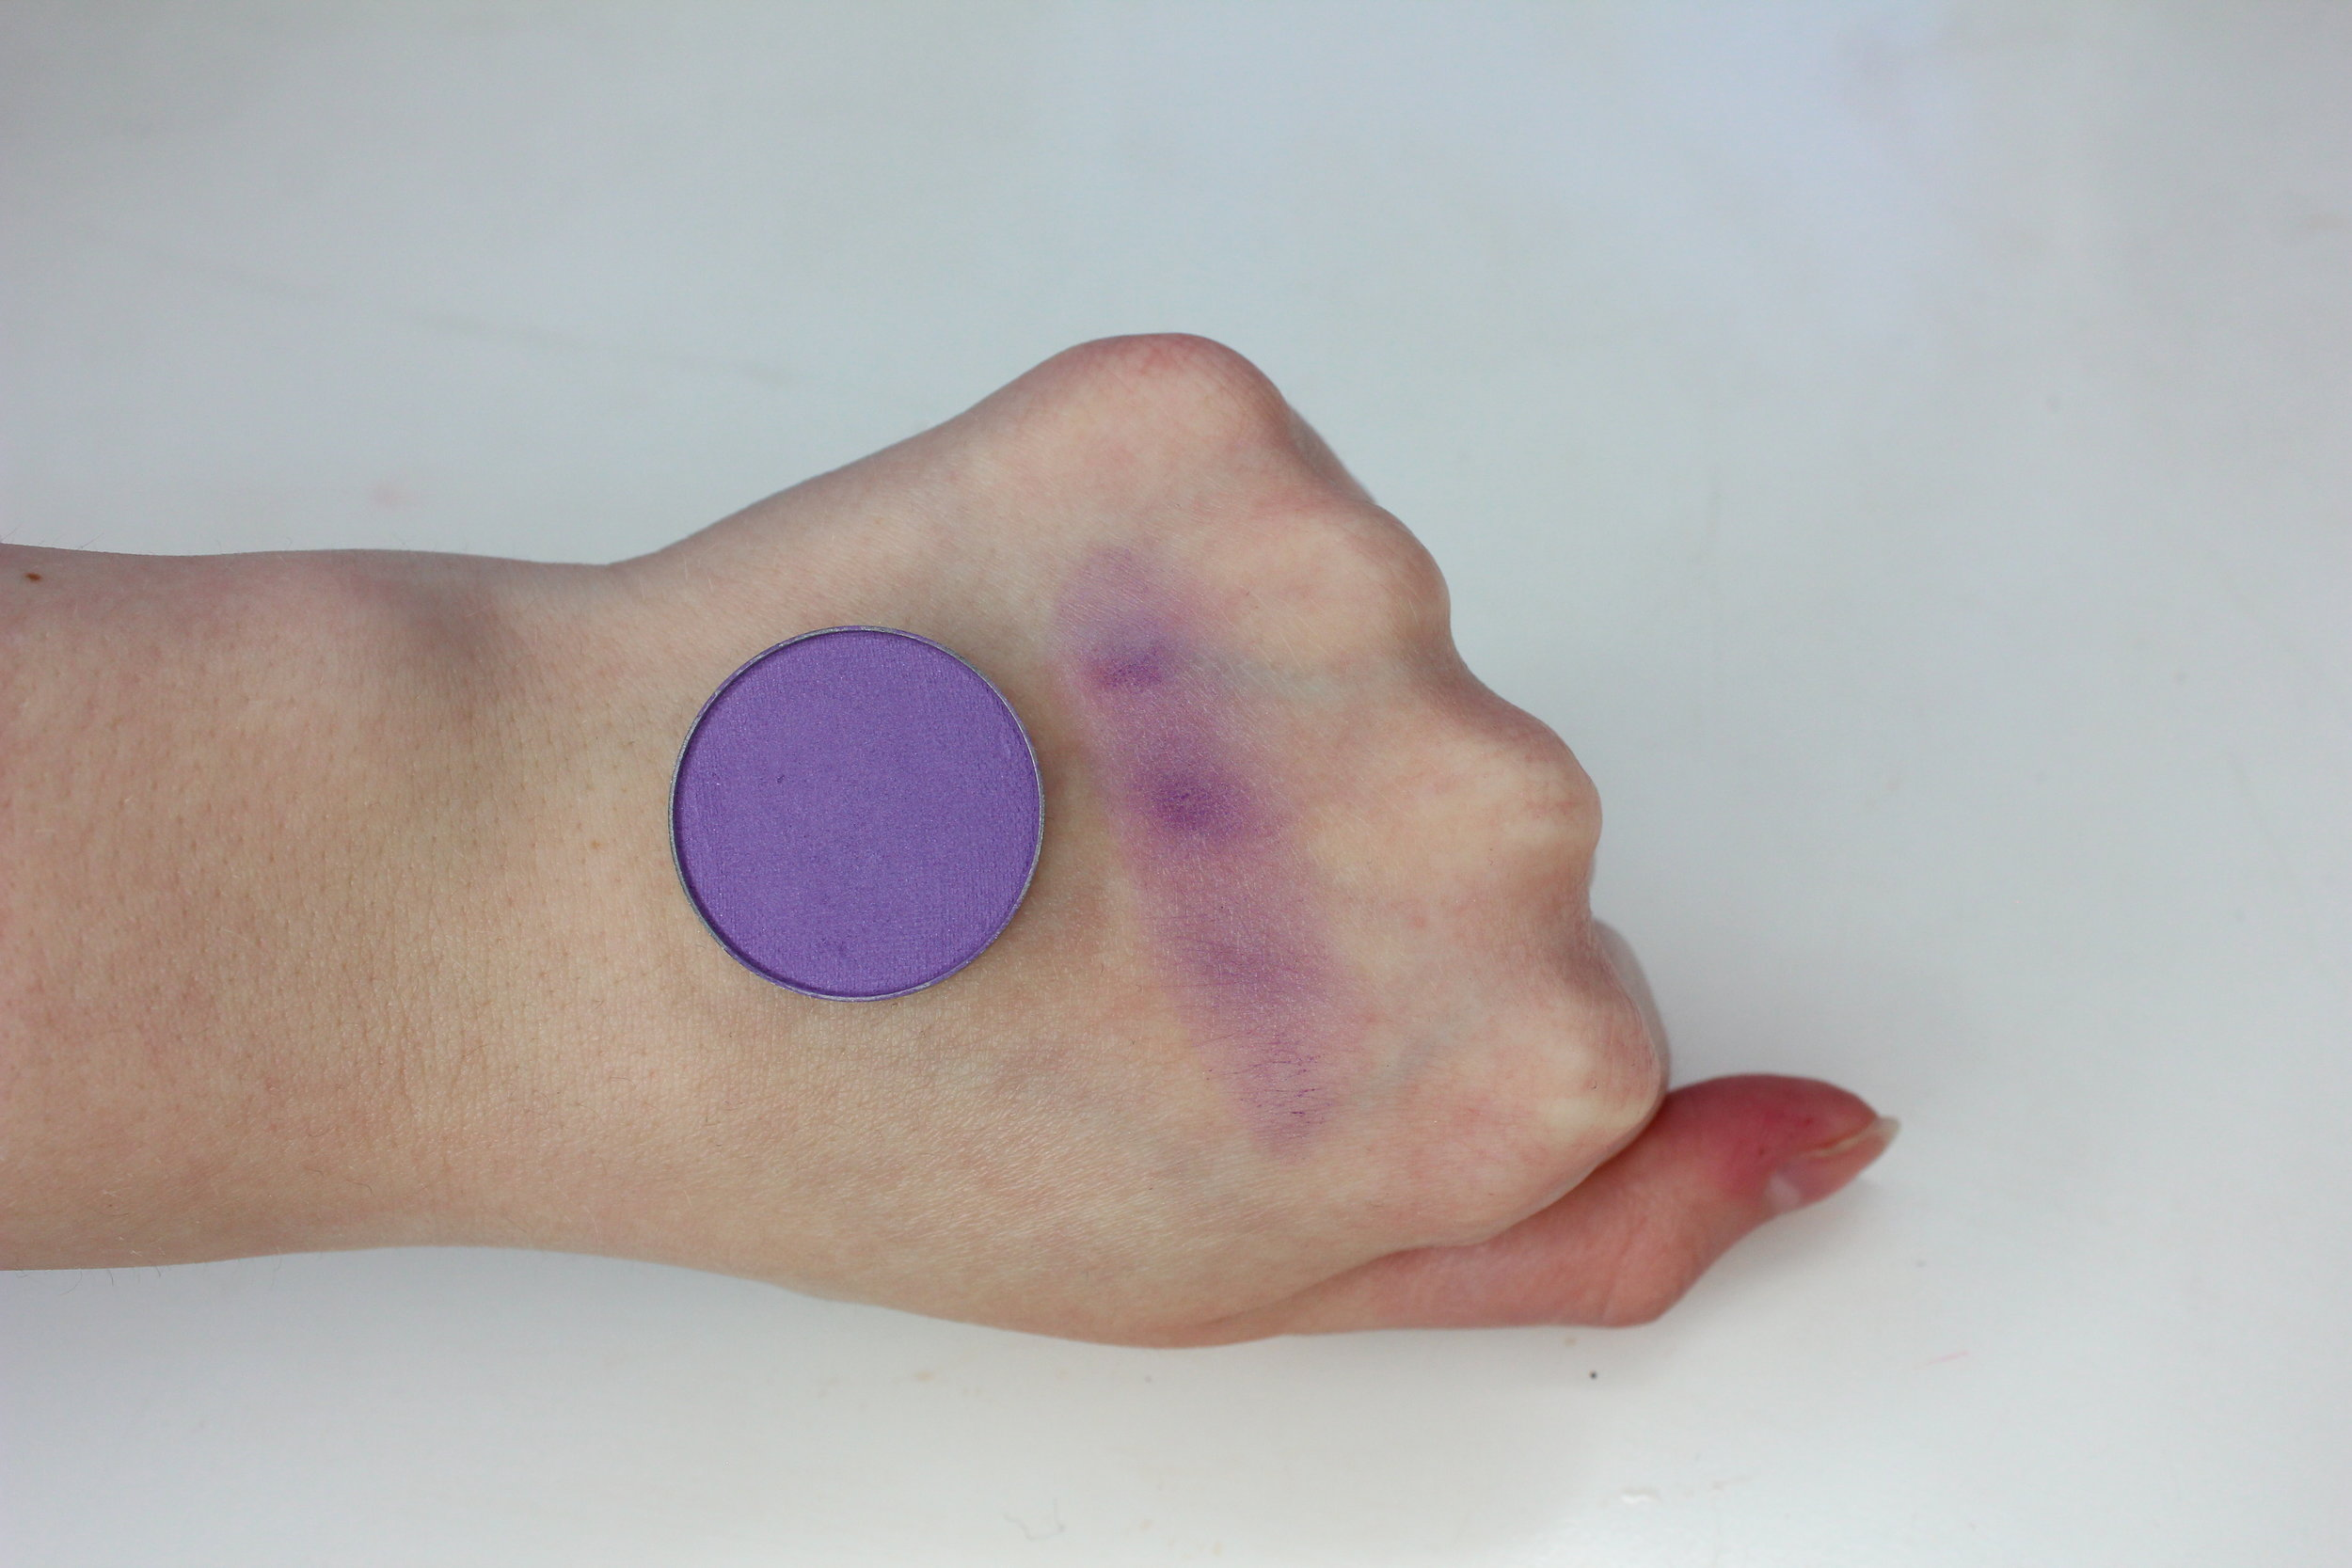 MUG Wistera (New Formula) Swatch 2